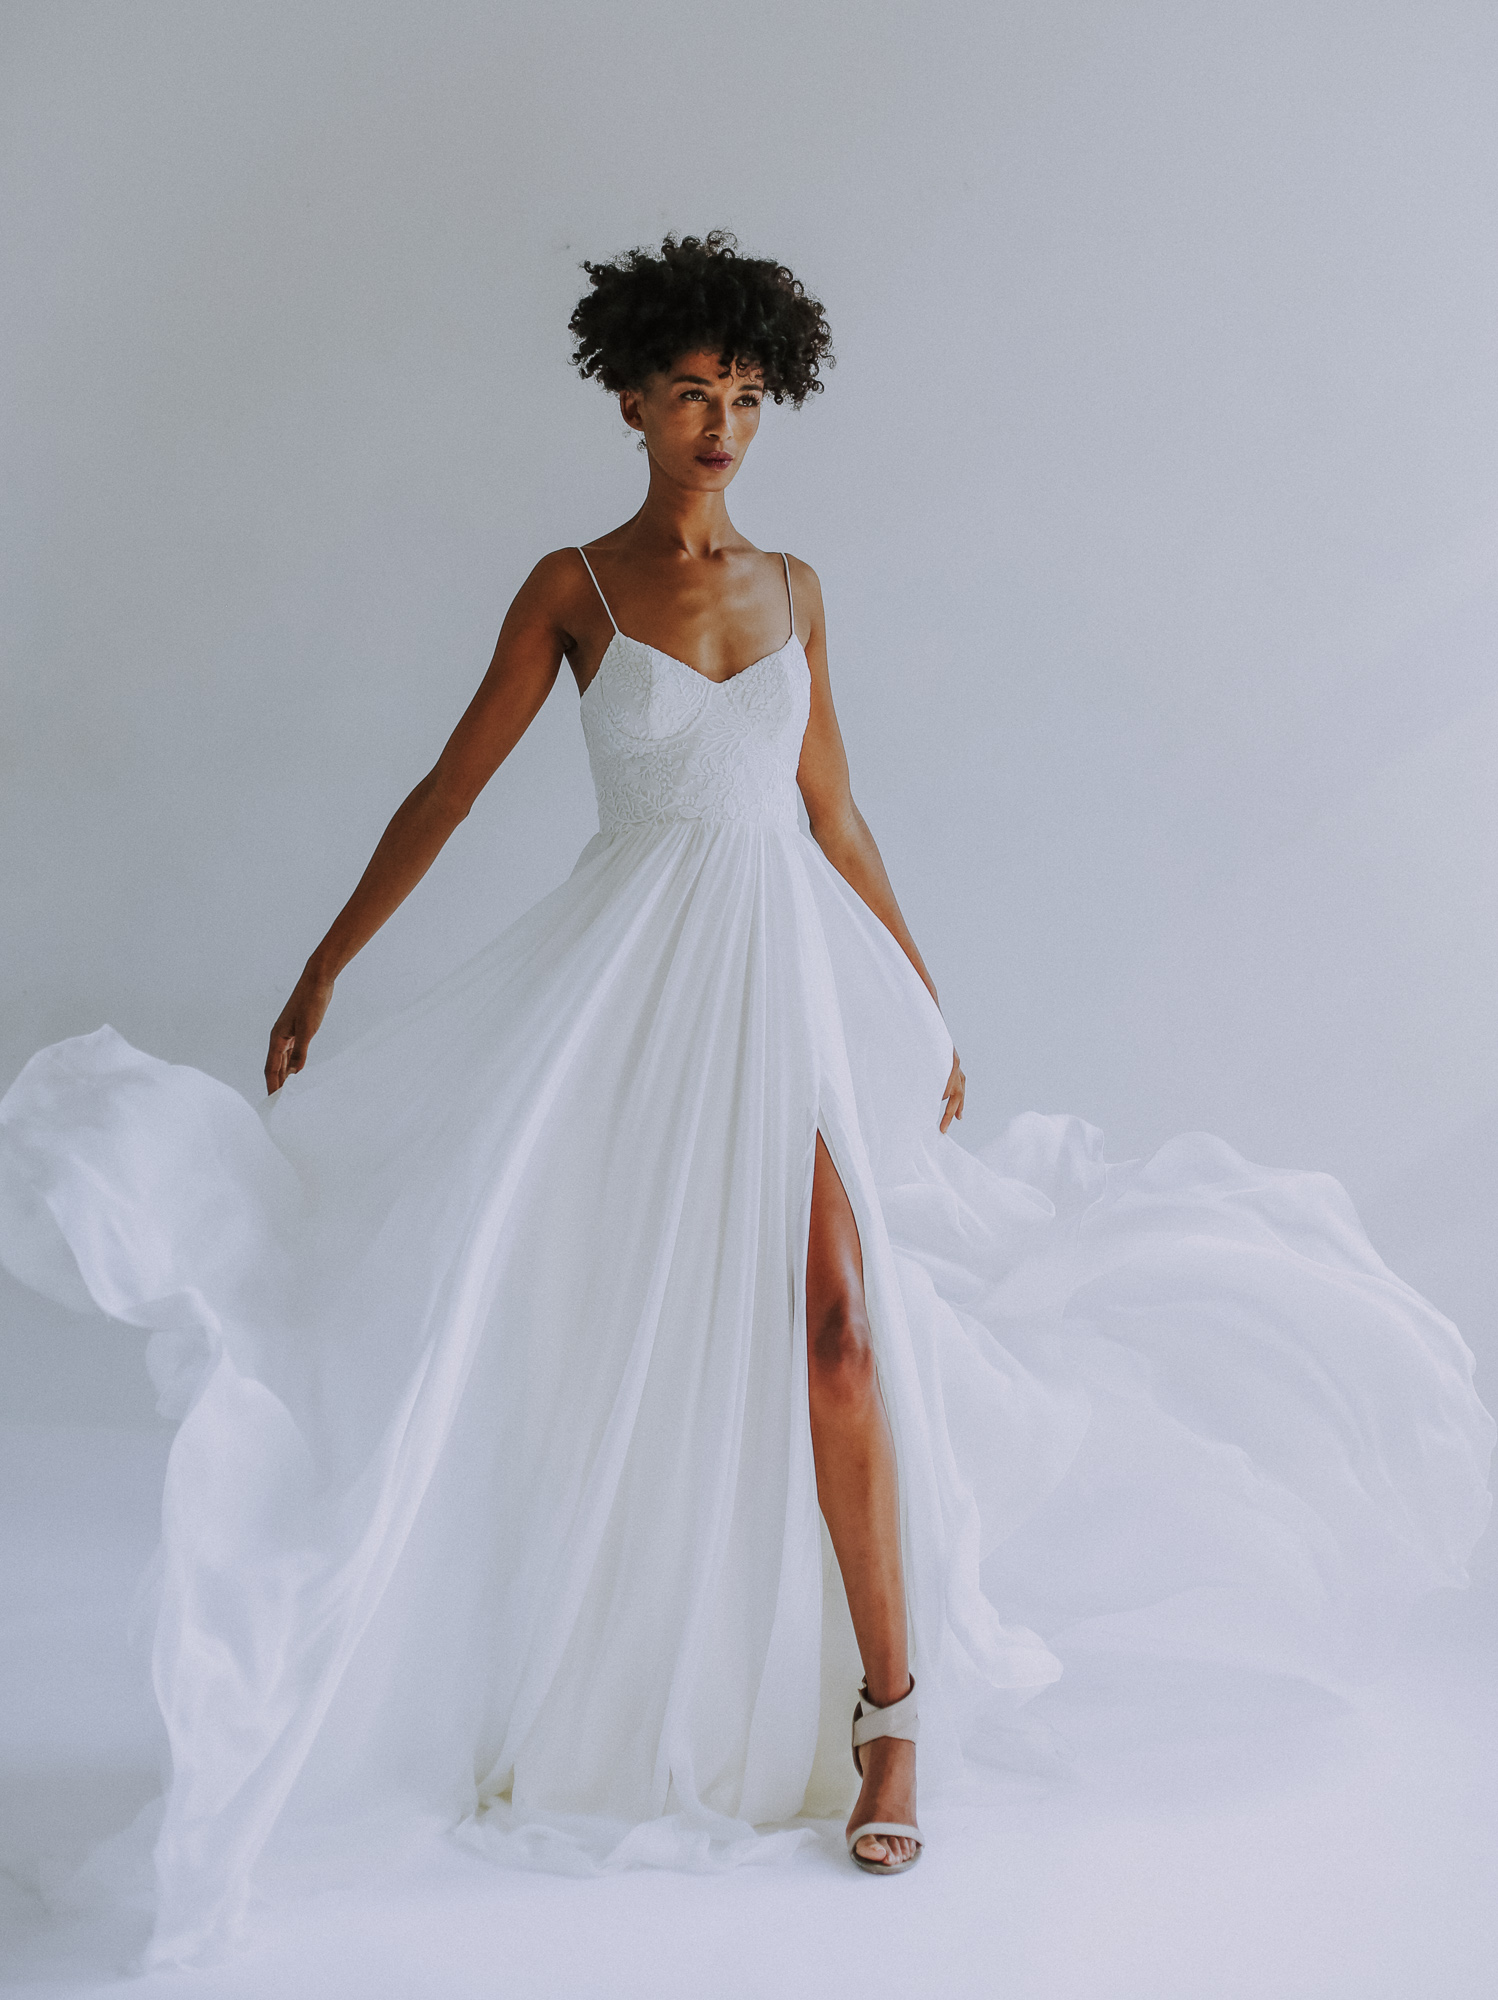 leanne-marshall-wedding-gown-1.jpg